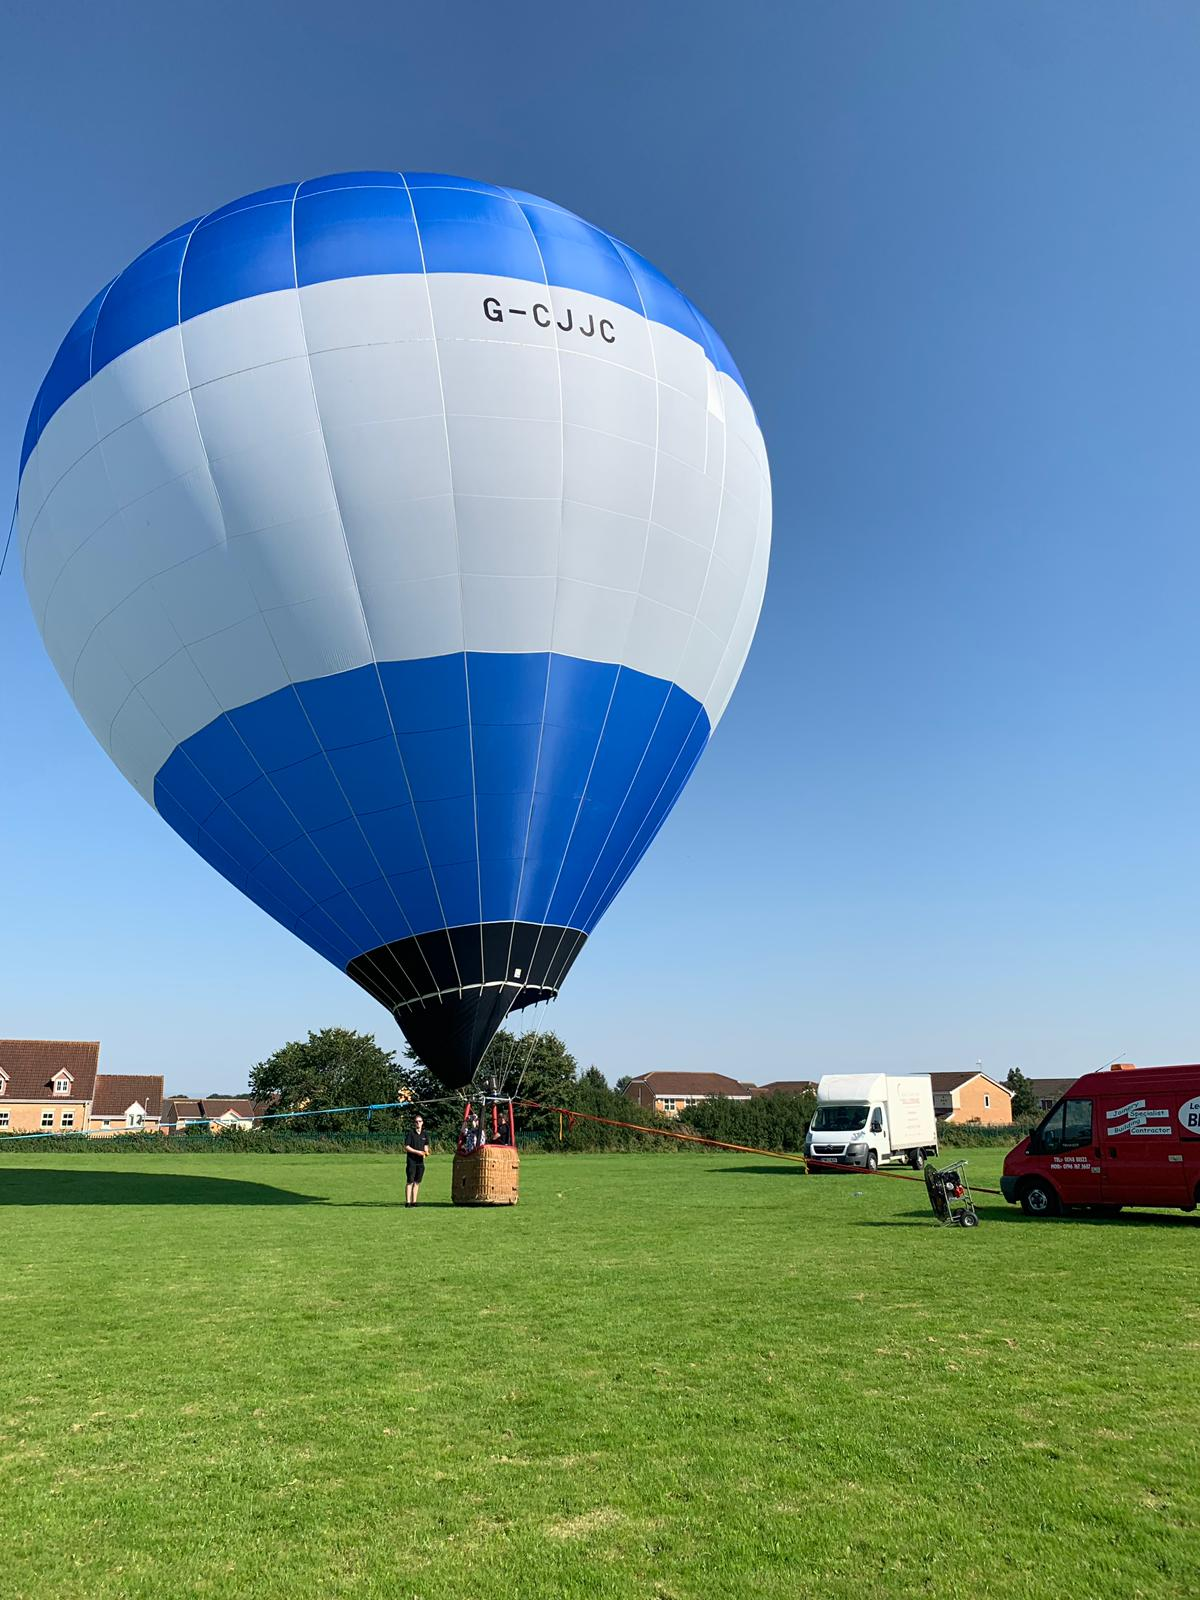 A blue and white balloon in a large field, representing unbranded tethering for events.